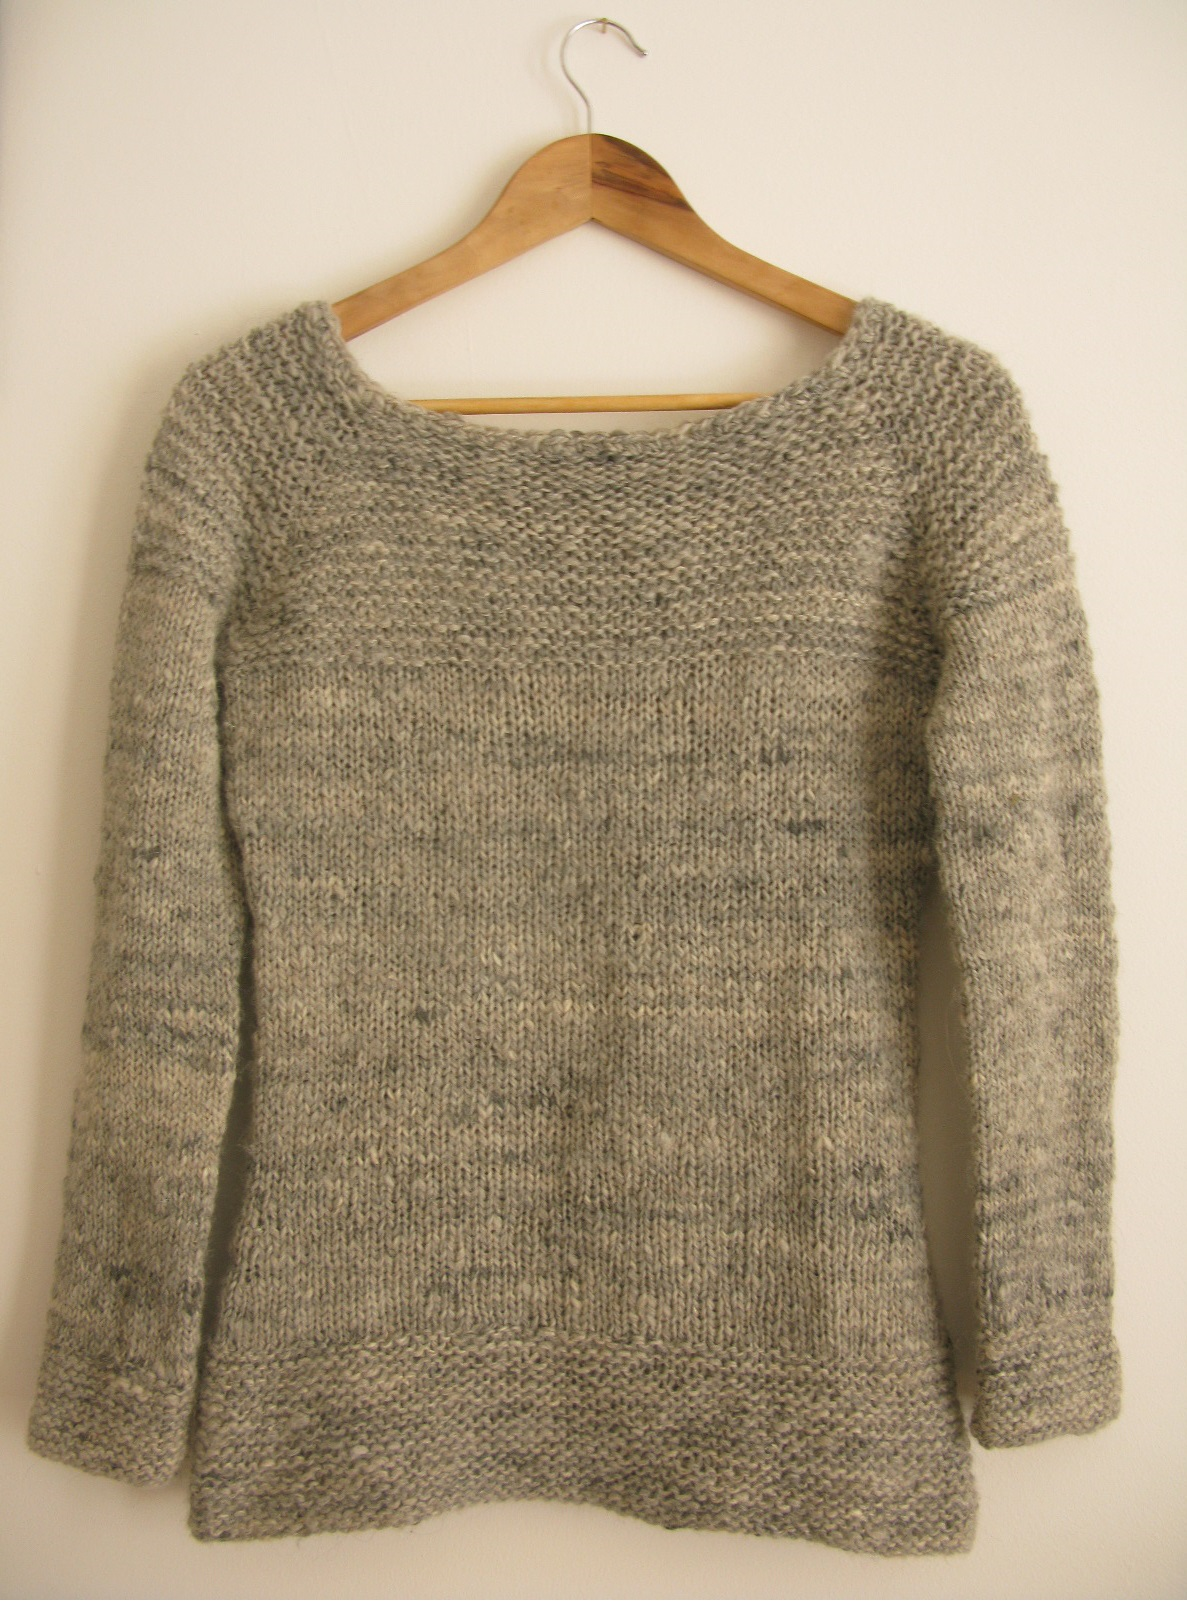 Free Raglan Sweater Knitting Pattern : Caora Sweater Pattern Caora Fibres